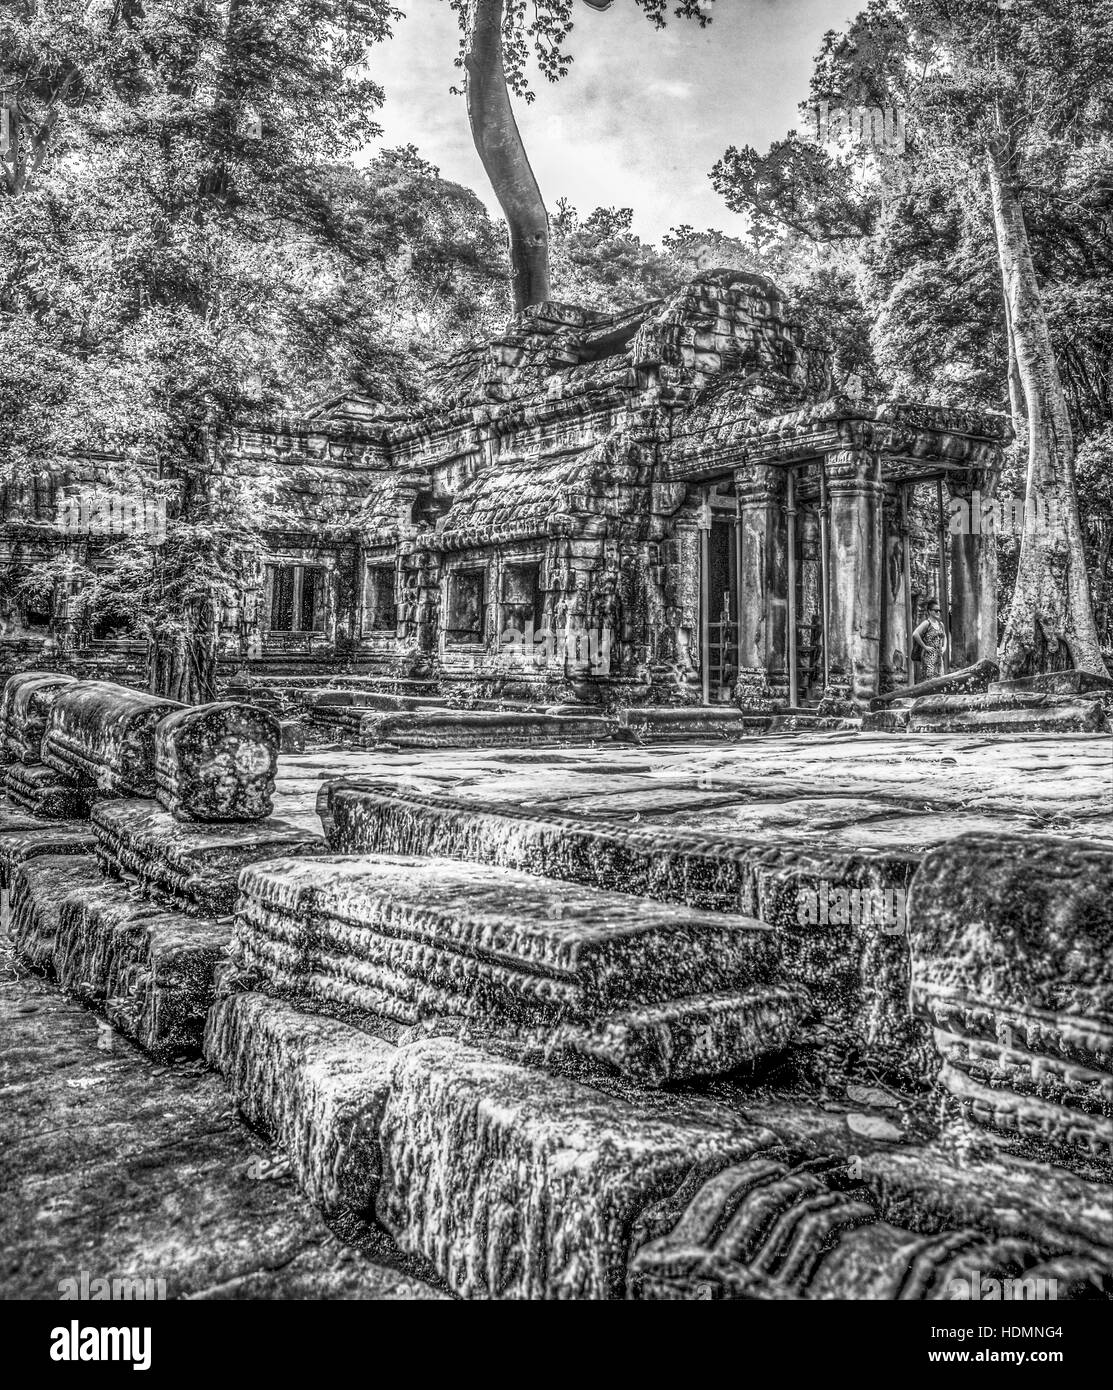 Lithographic-type black and white view of the platform at the East entrance to Ta Prohm temple complex at Siem Reap, - Stock Image